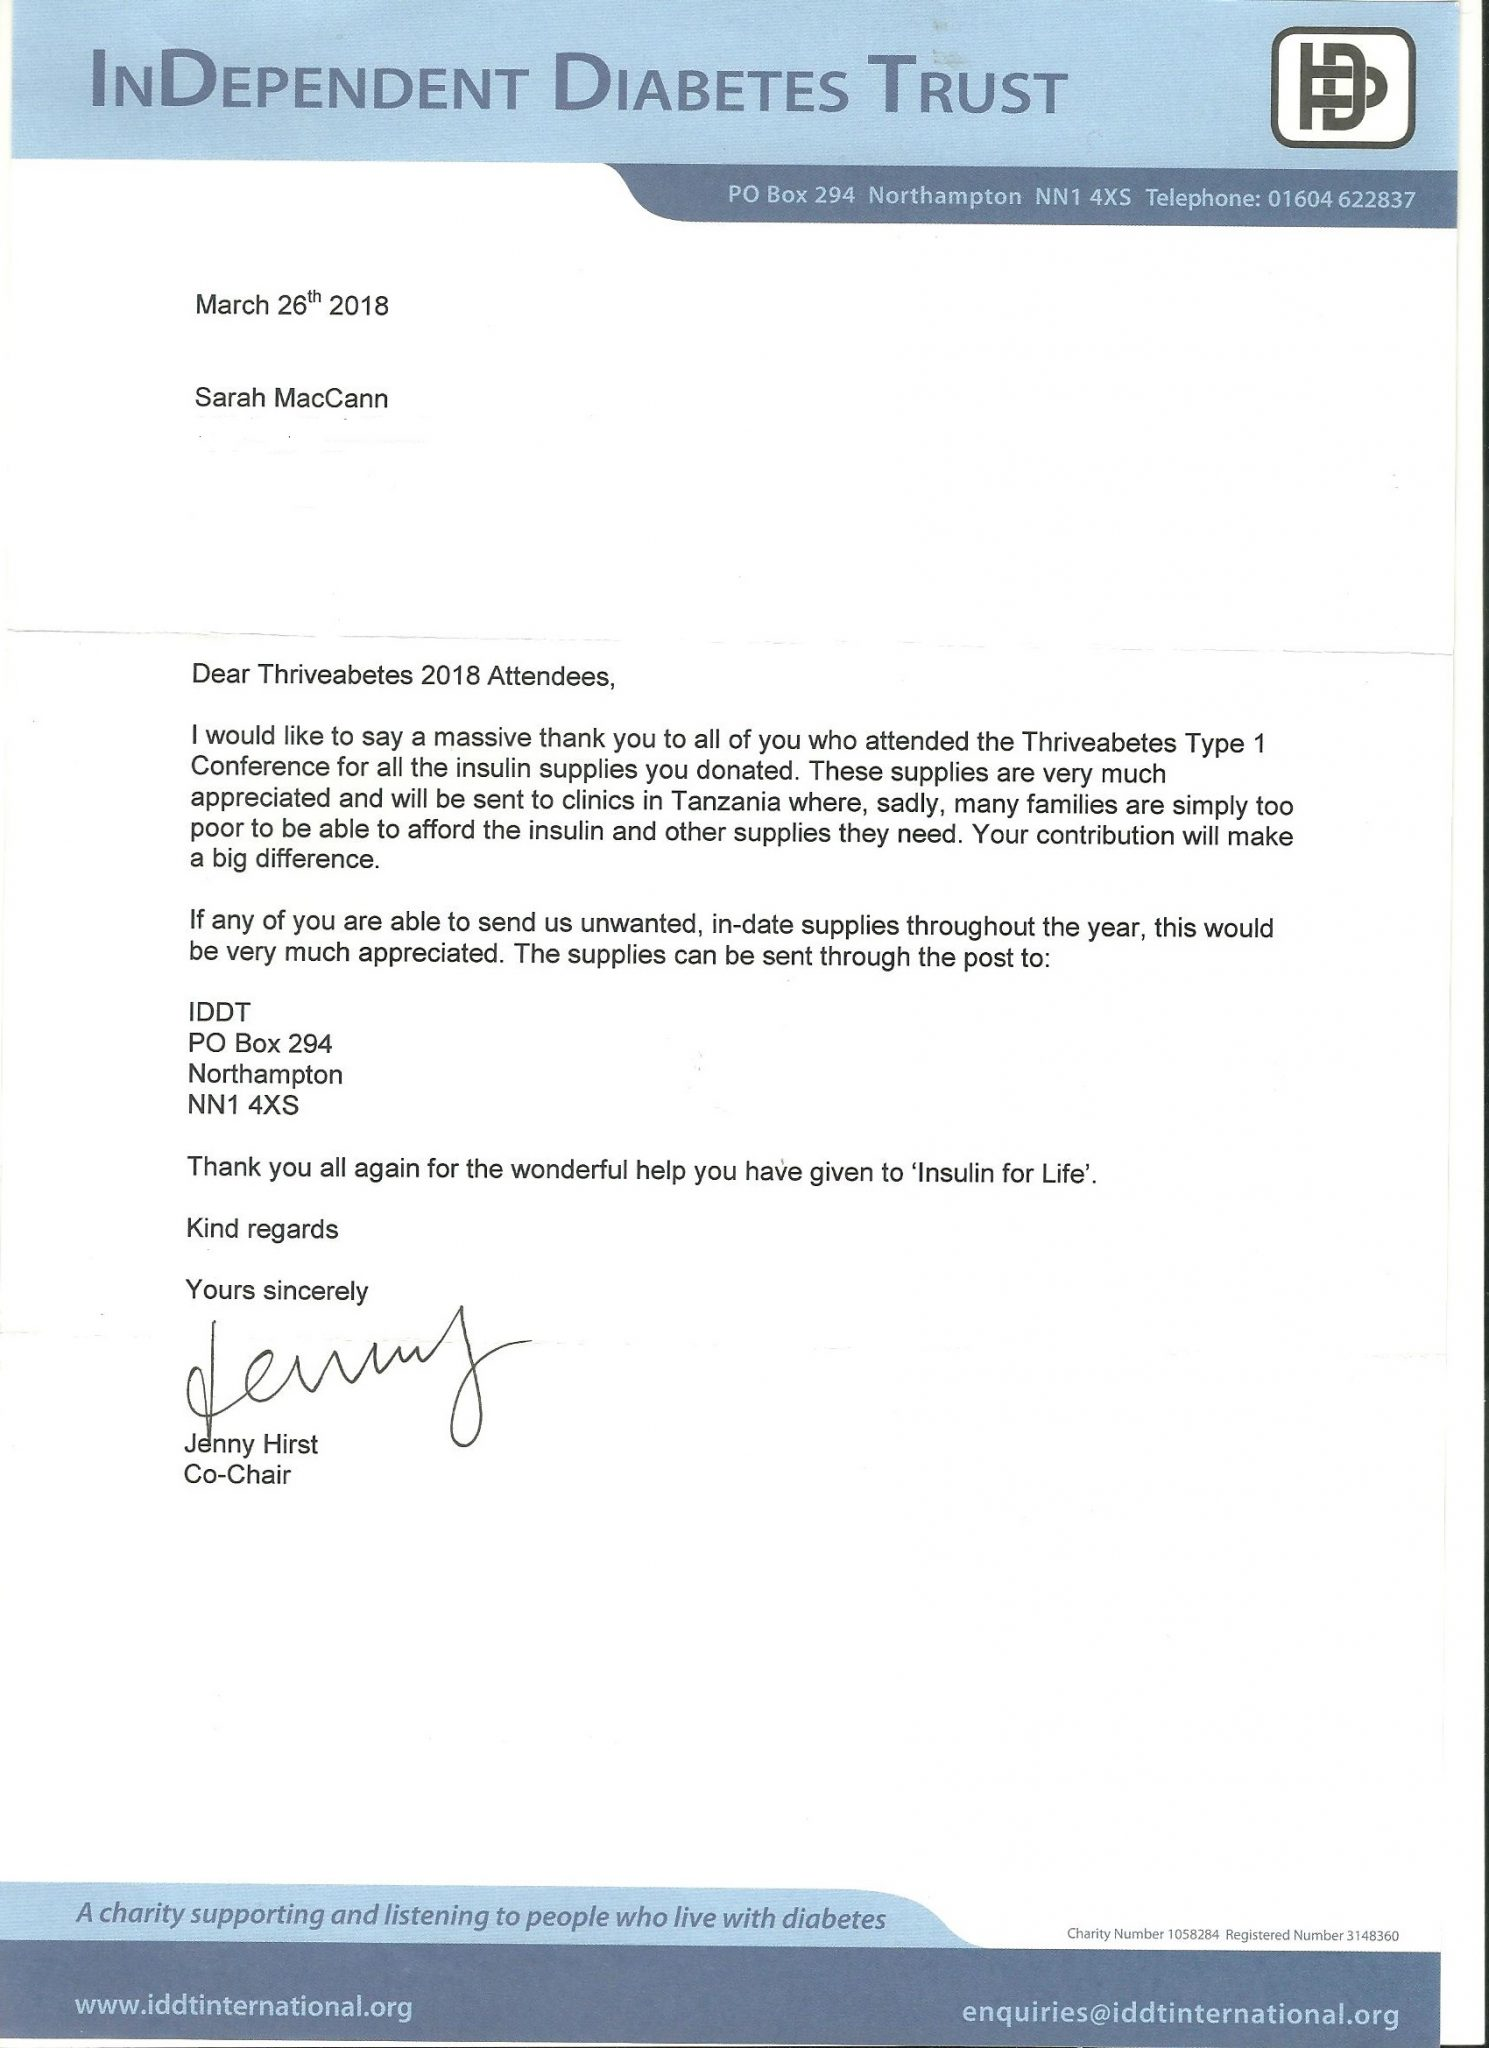 Thank you letter from the InDependent Diabetes Trust